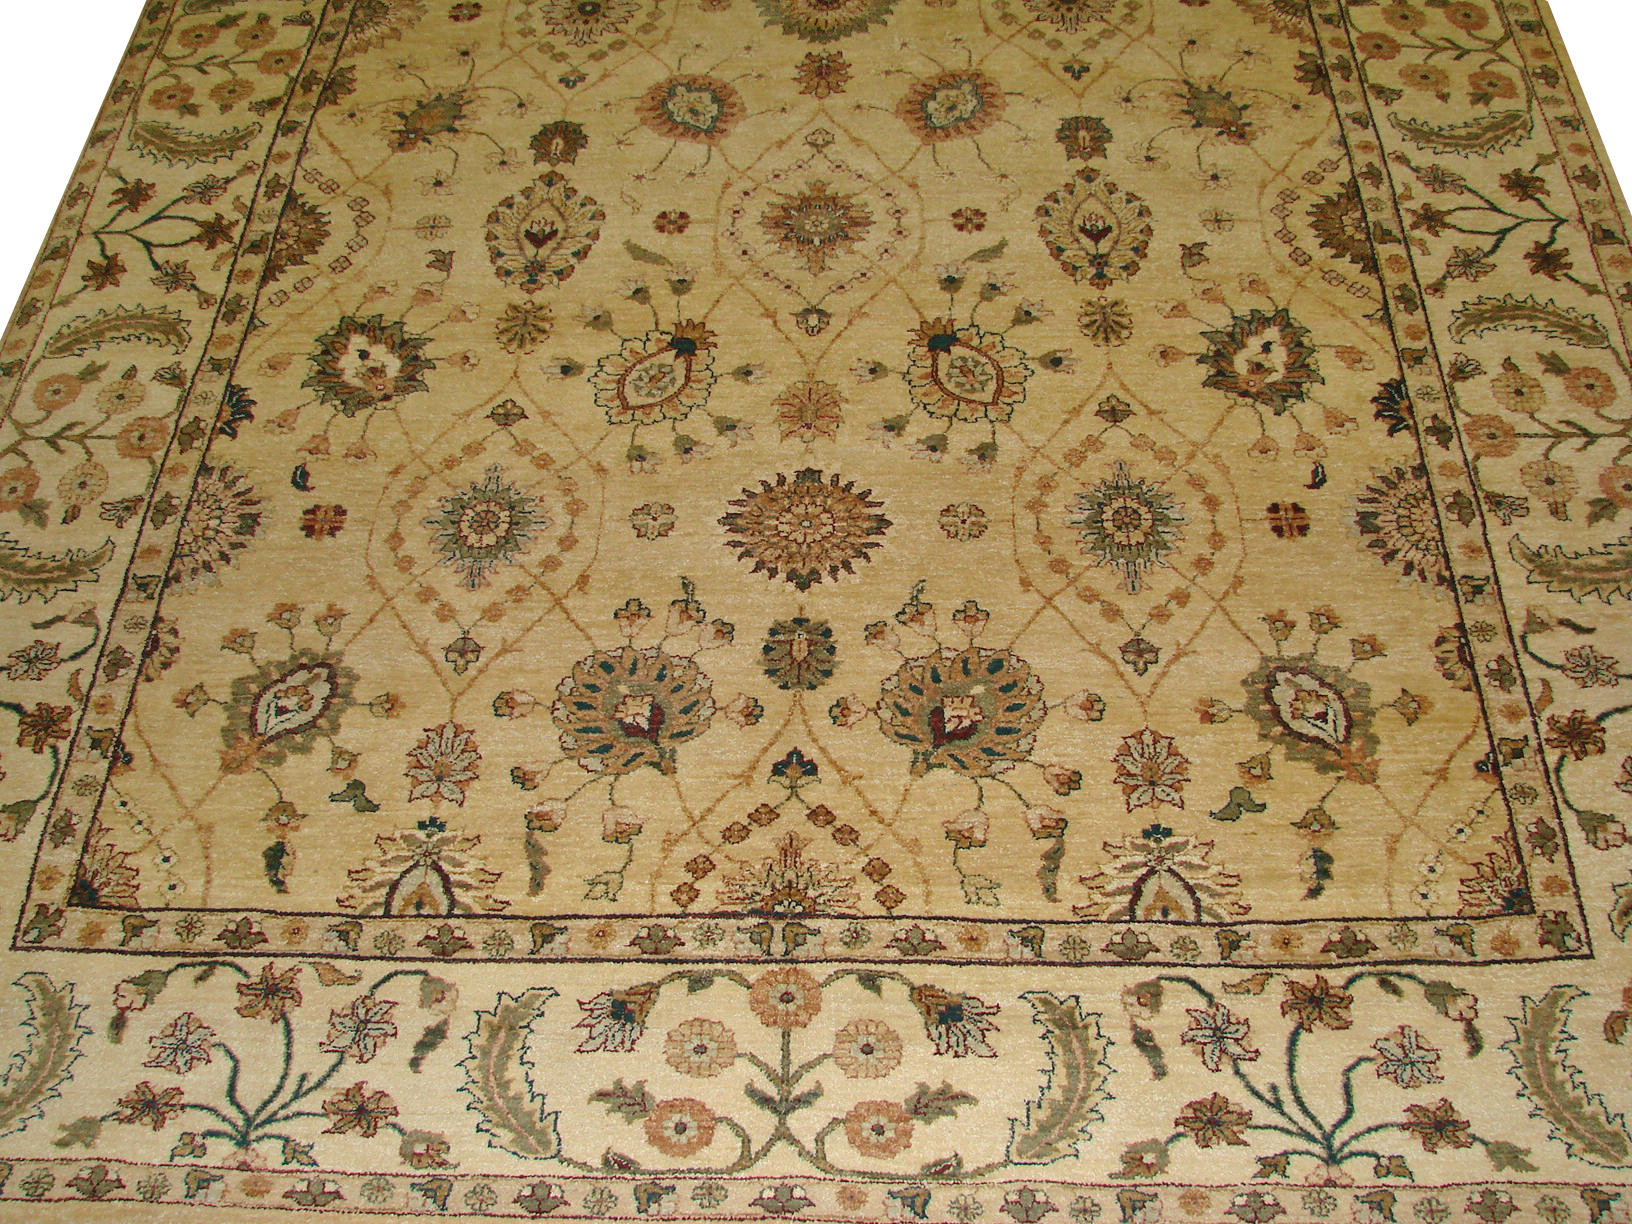 8x10 Traditional Hand Knotted Wool Area Rug - MR3266